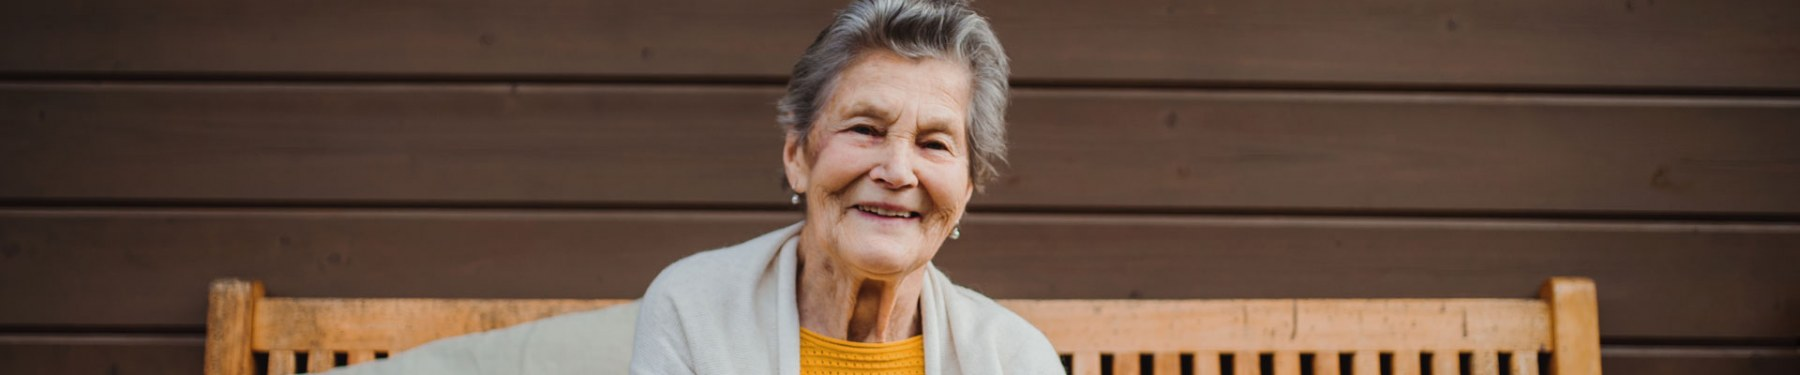 smiling older woman sitting on a wooden bench